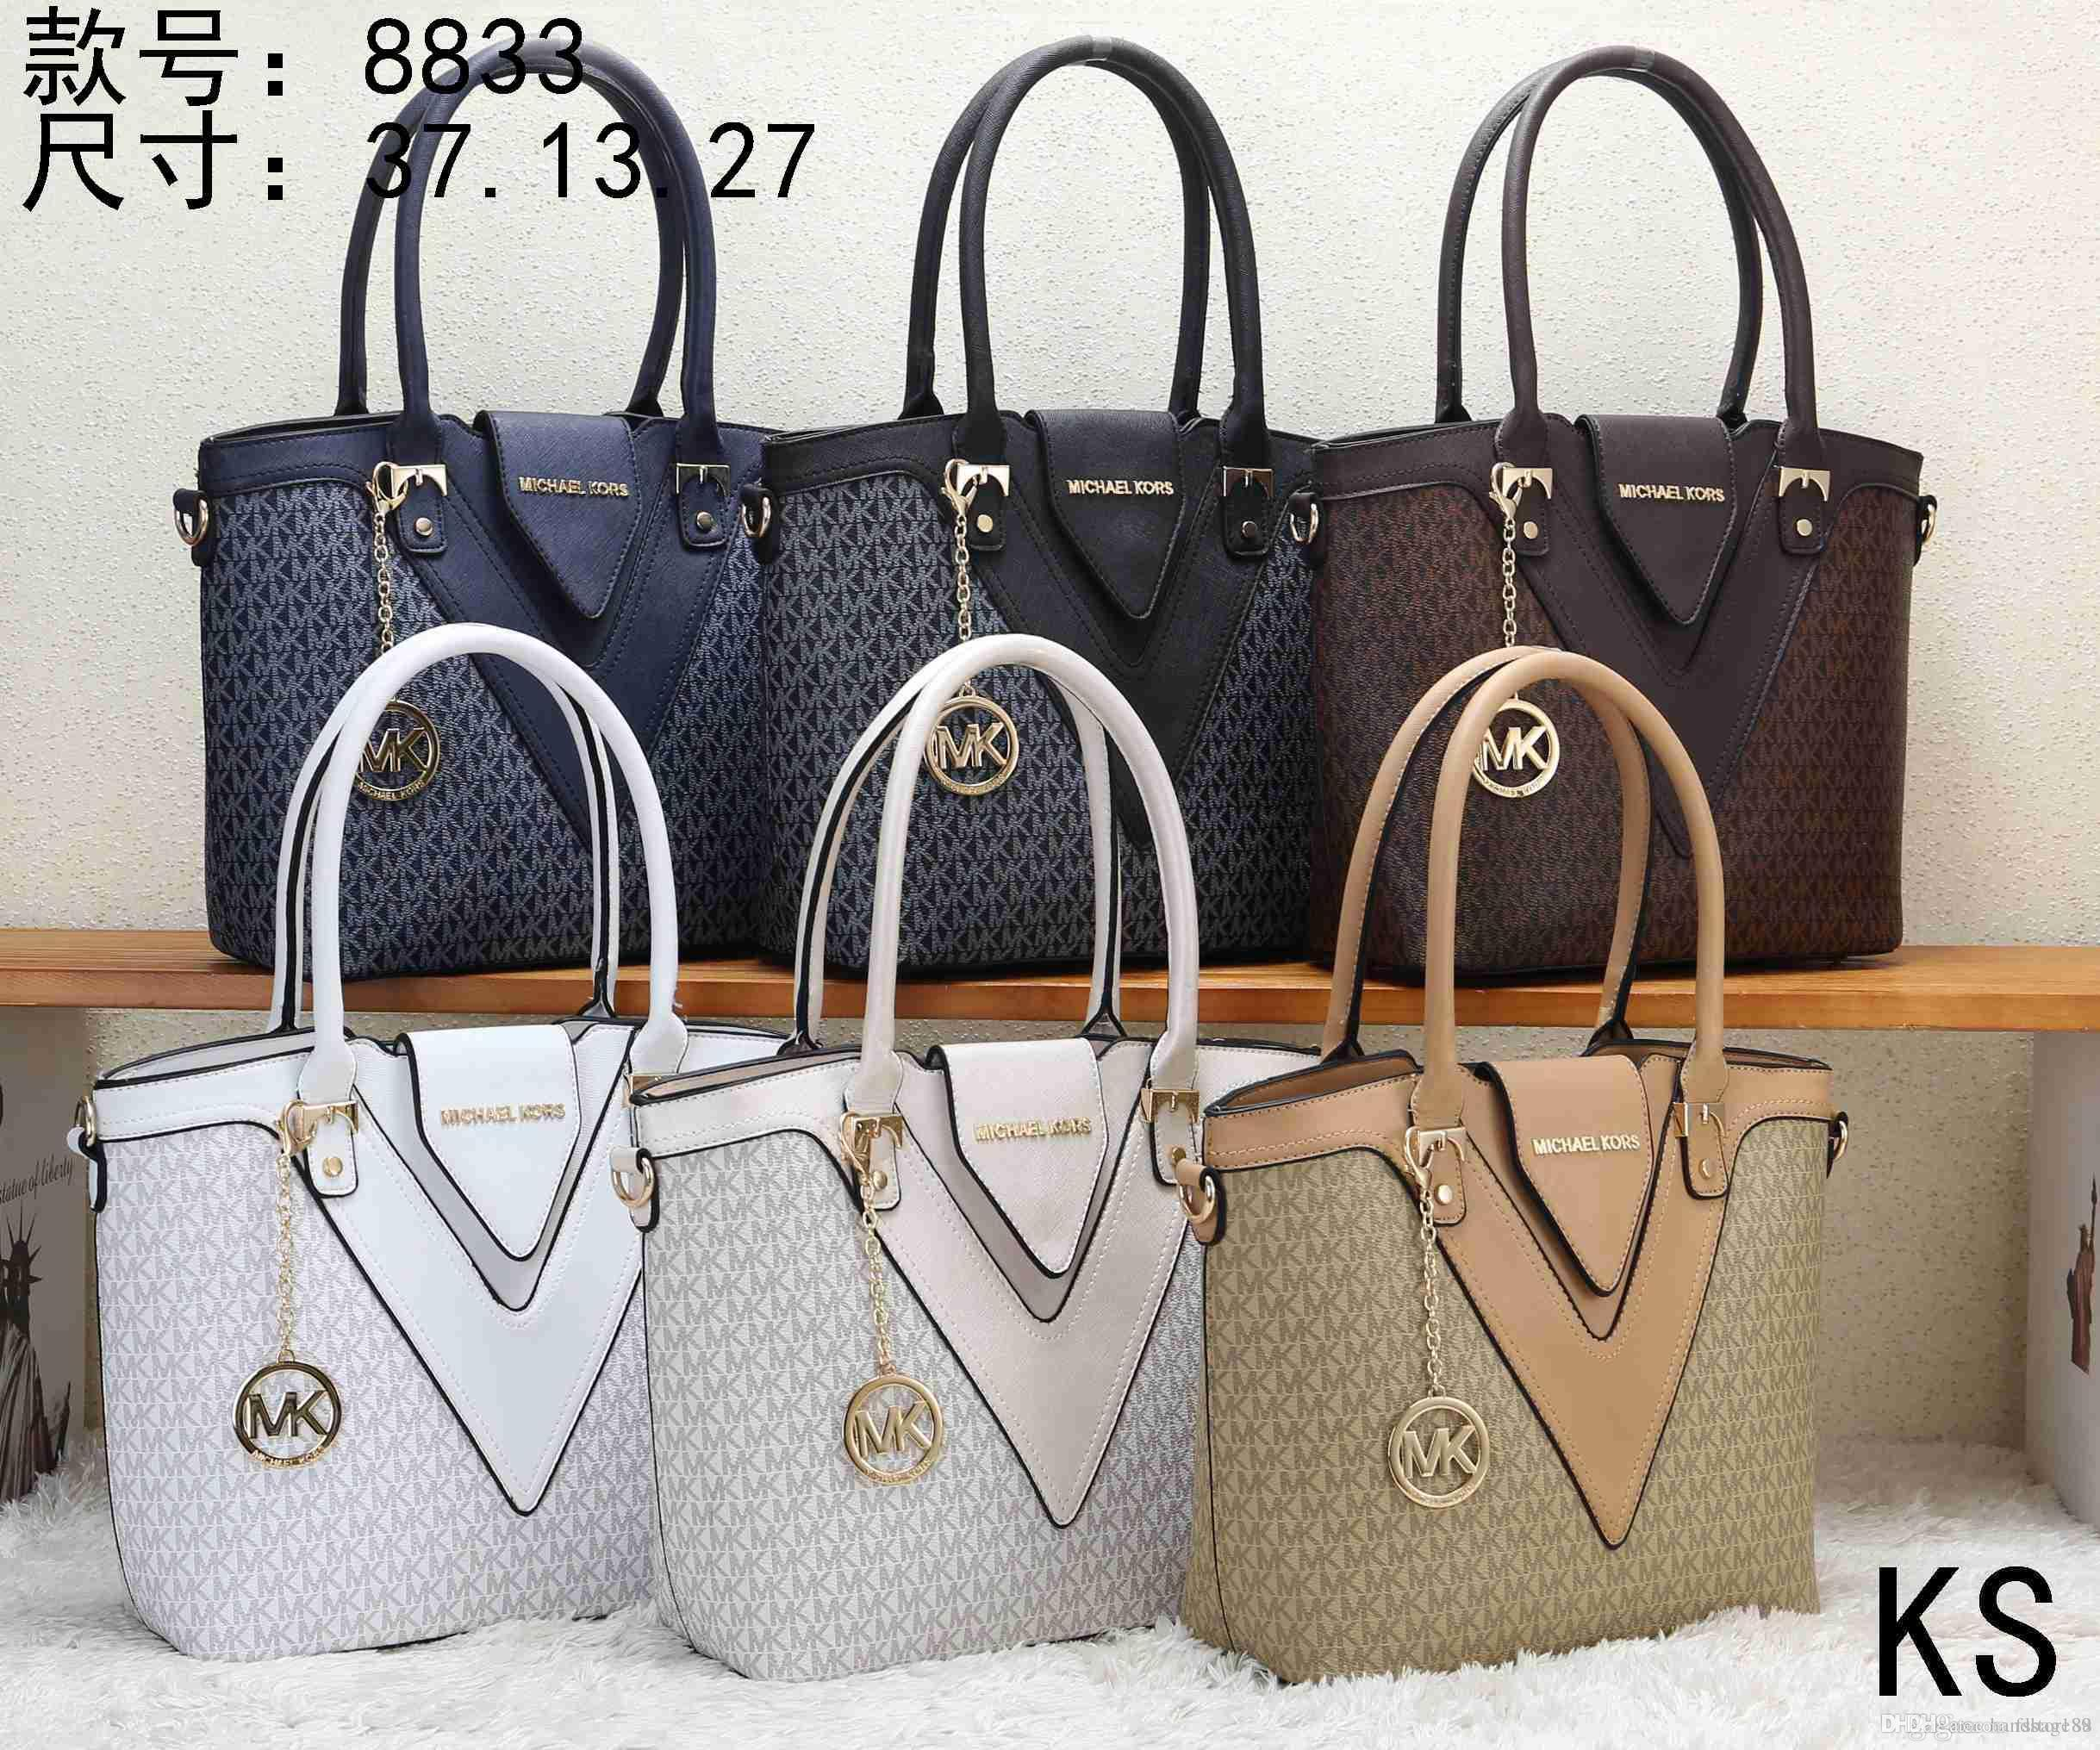 da48f6cb02da 2019 MK 8833 KS NEW Styles Fashion Bags Ladies Handbags Designer Bags Women  Tote Bag Luxury Brands Bags Single Shoulder Bag From Fsstore88, $28.15 |  DHgate.